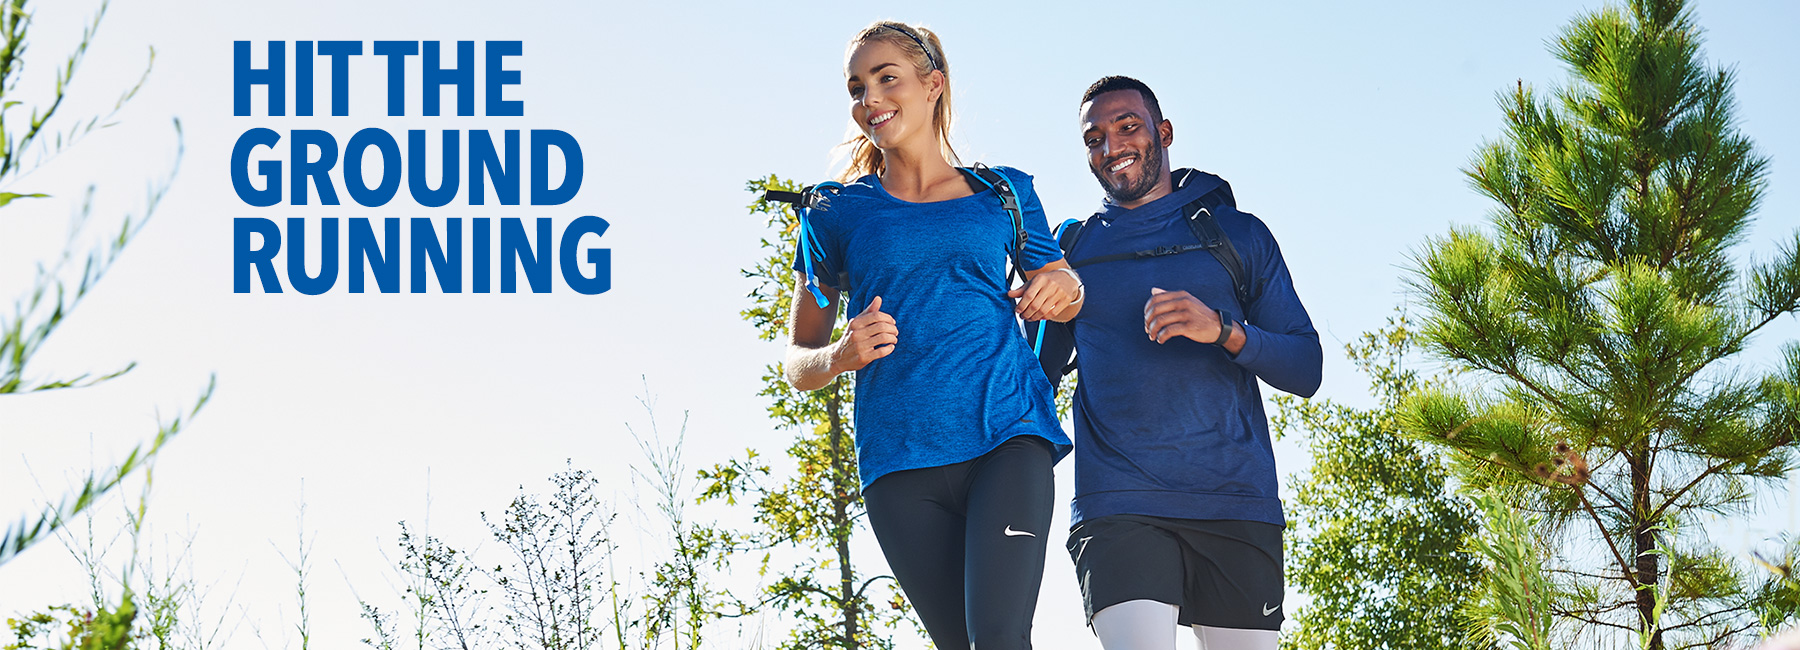 Hit the ground running. With marathon season around the corner, start training with the best gear for the run.